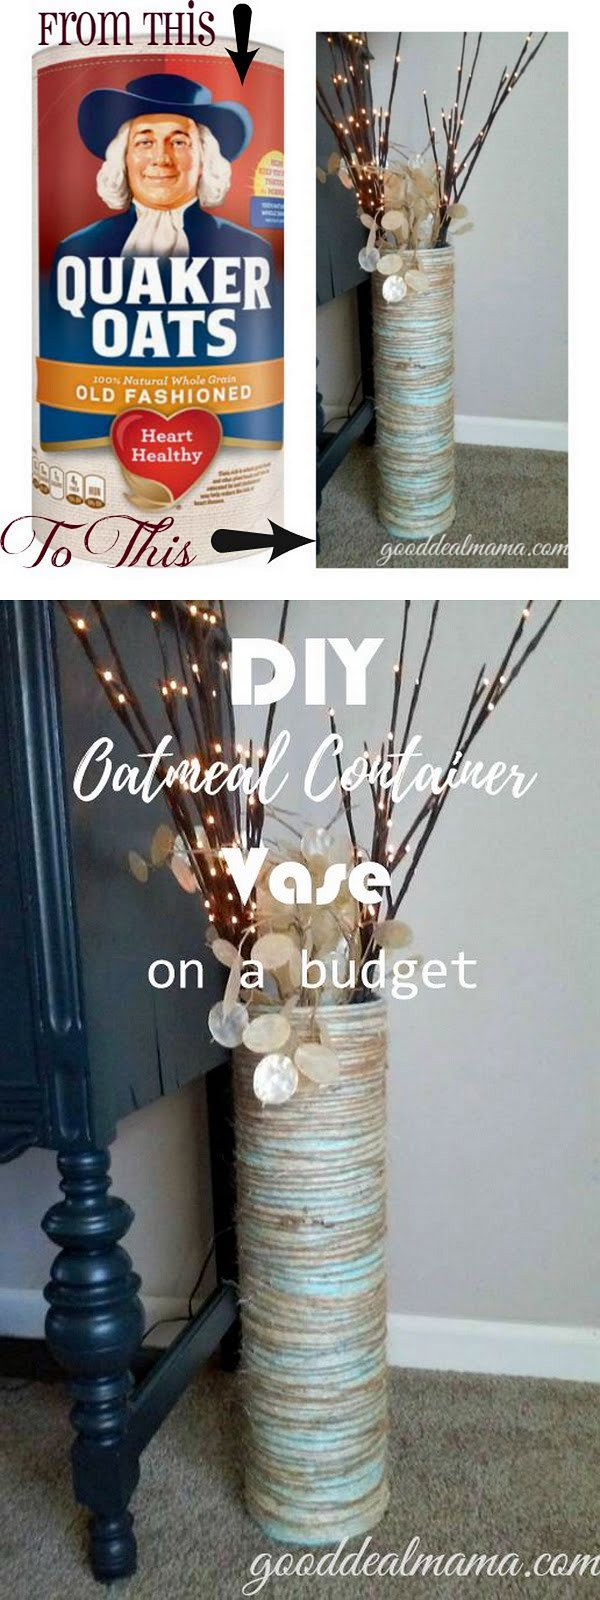 Check out this easy idea on how to make a #DIY oatmeal container vase for #homedecor on a #budget #crafts #project